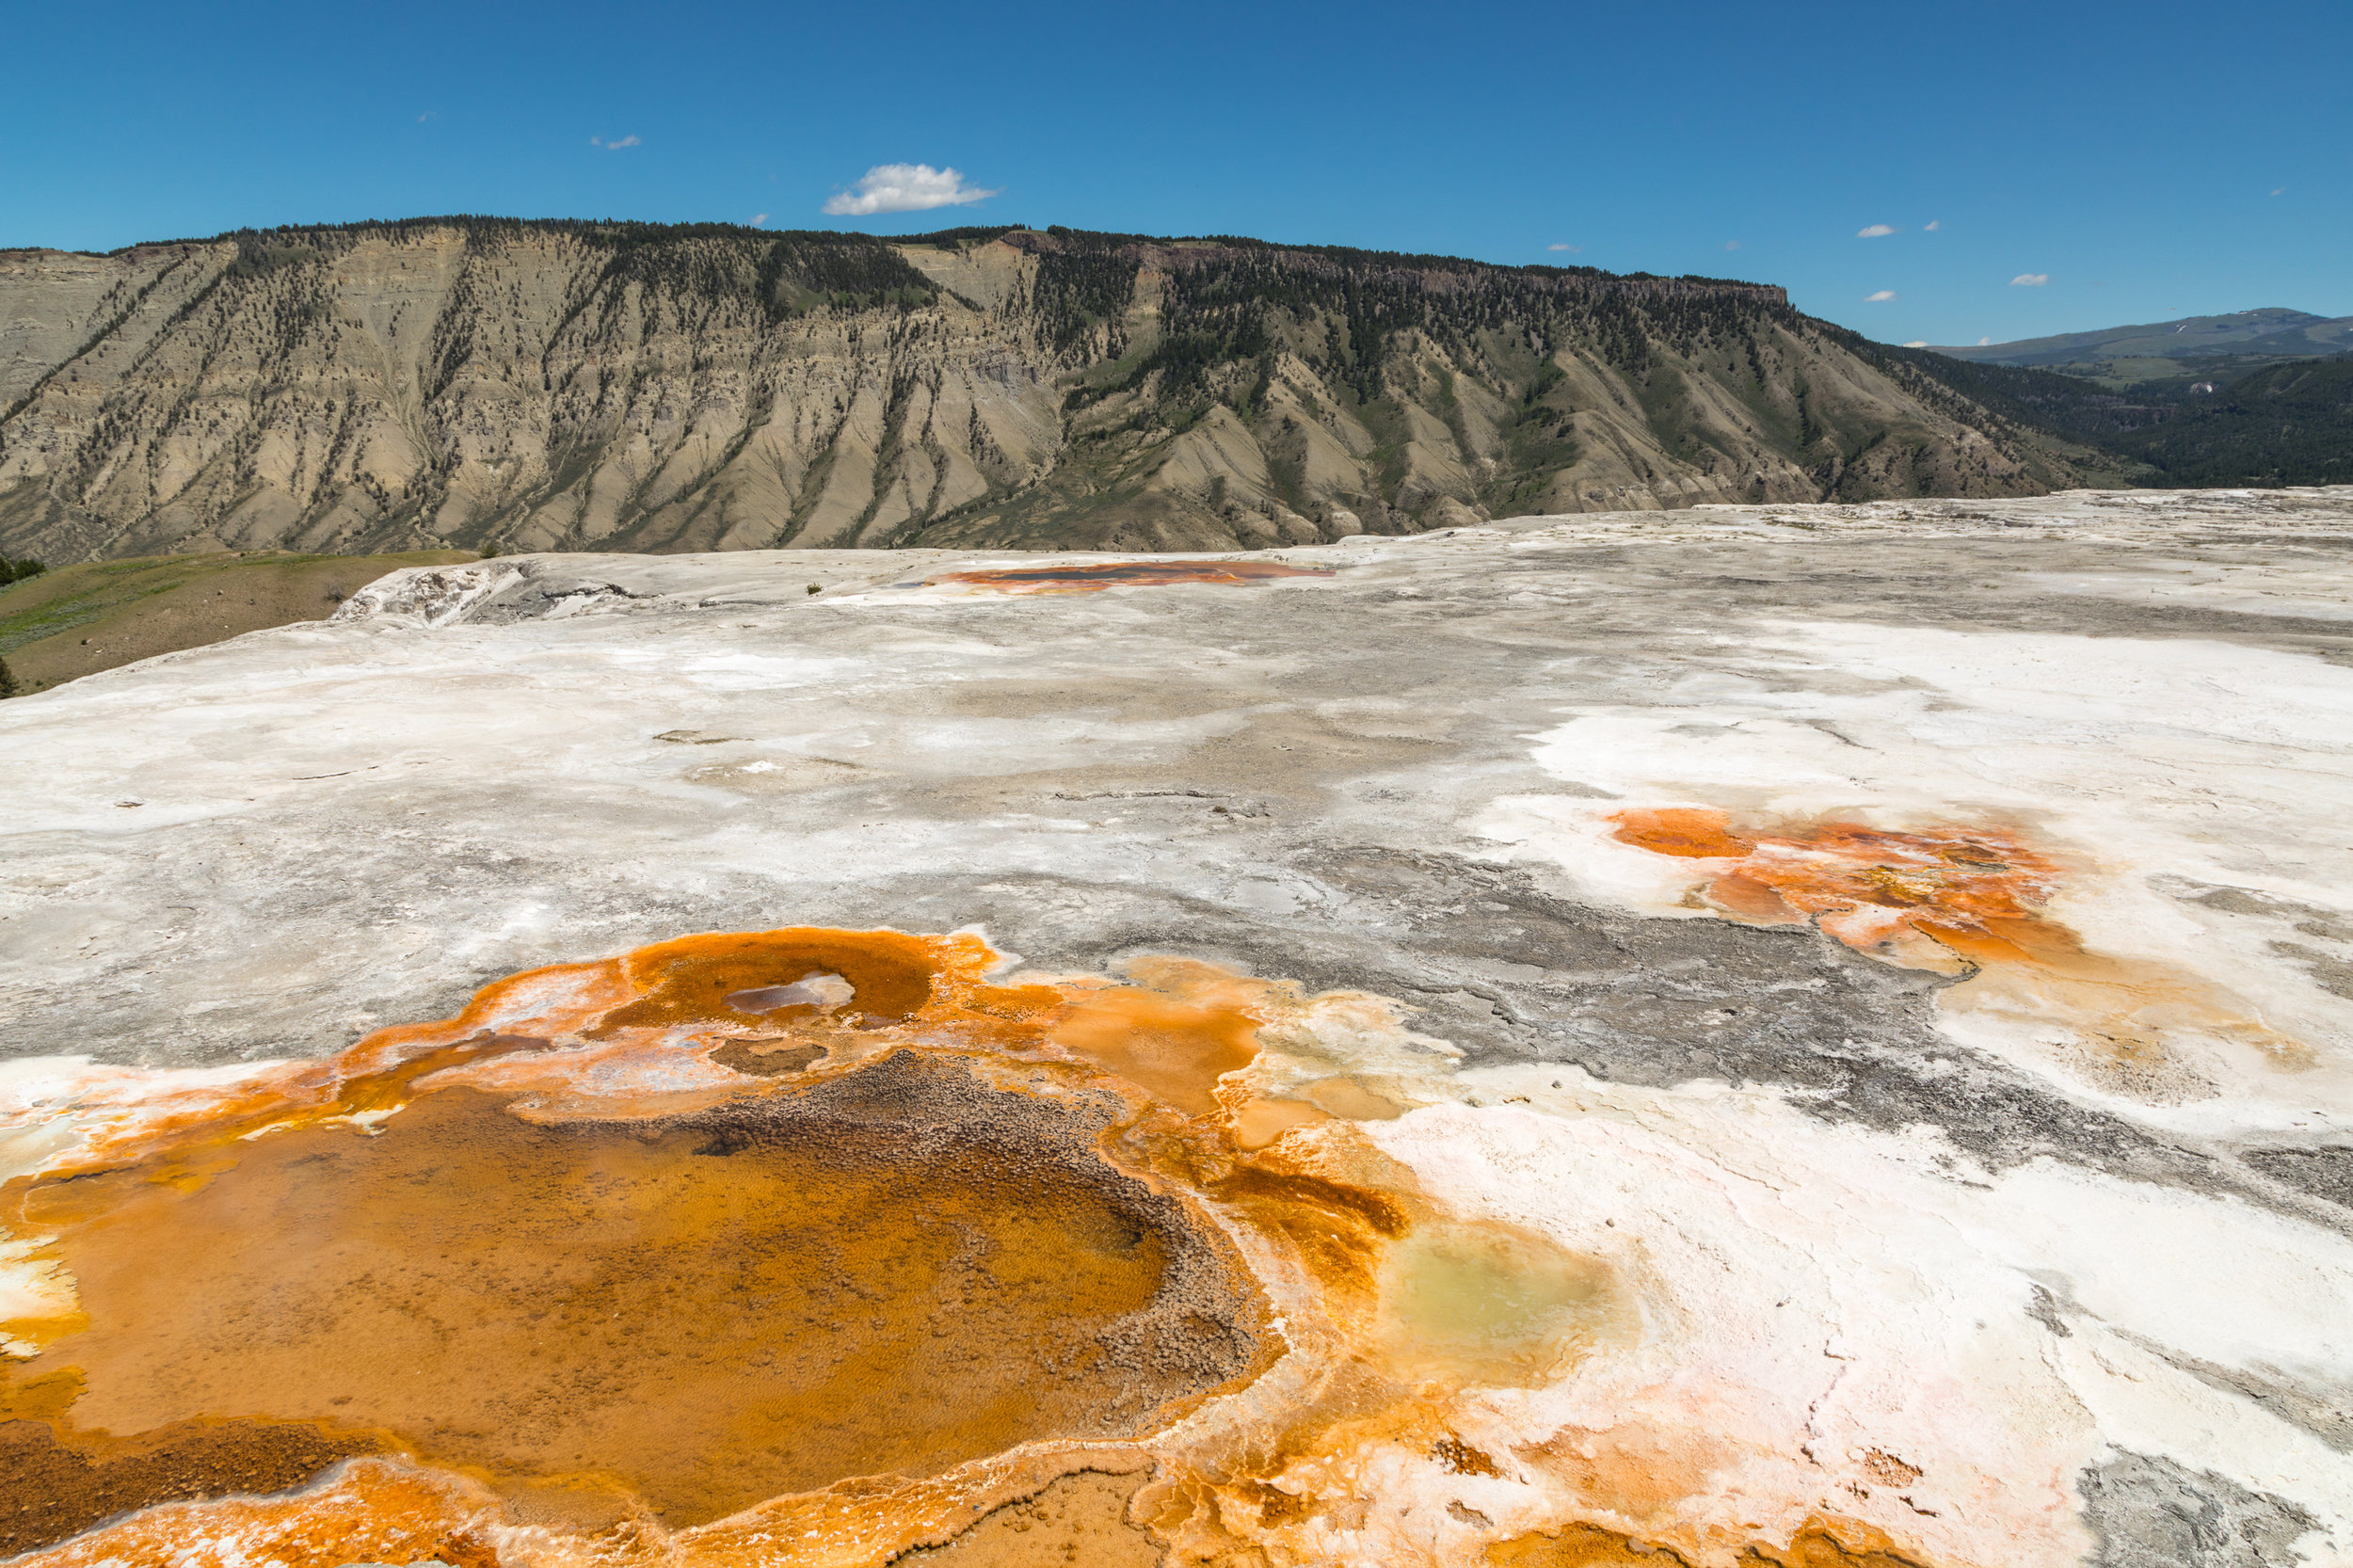 Mammoth Hot Springs, Yellowstone National Park, Image # 7325